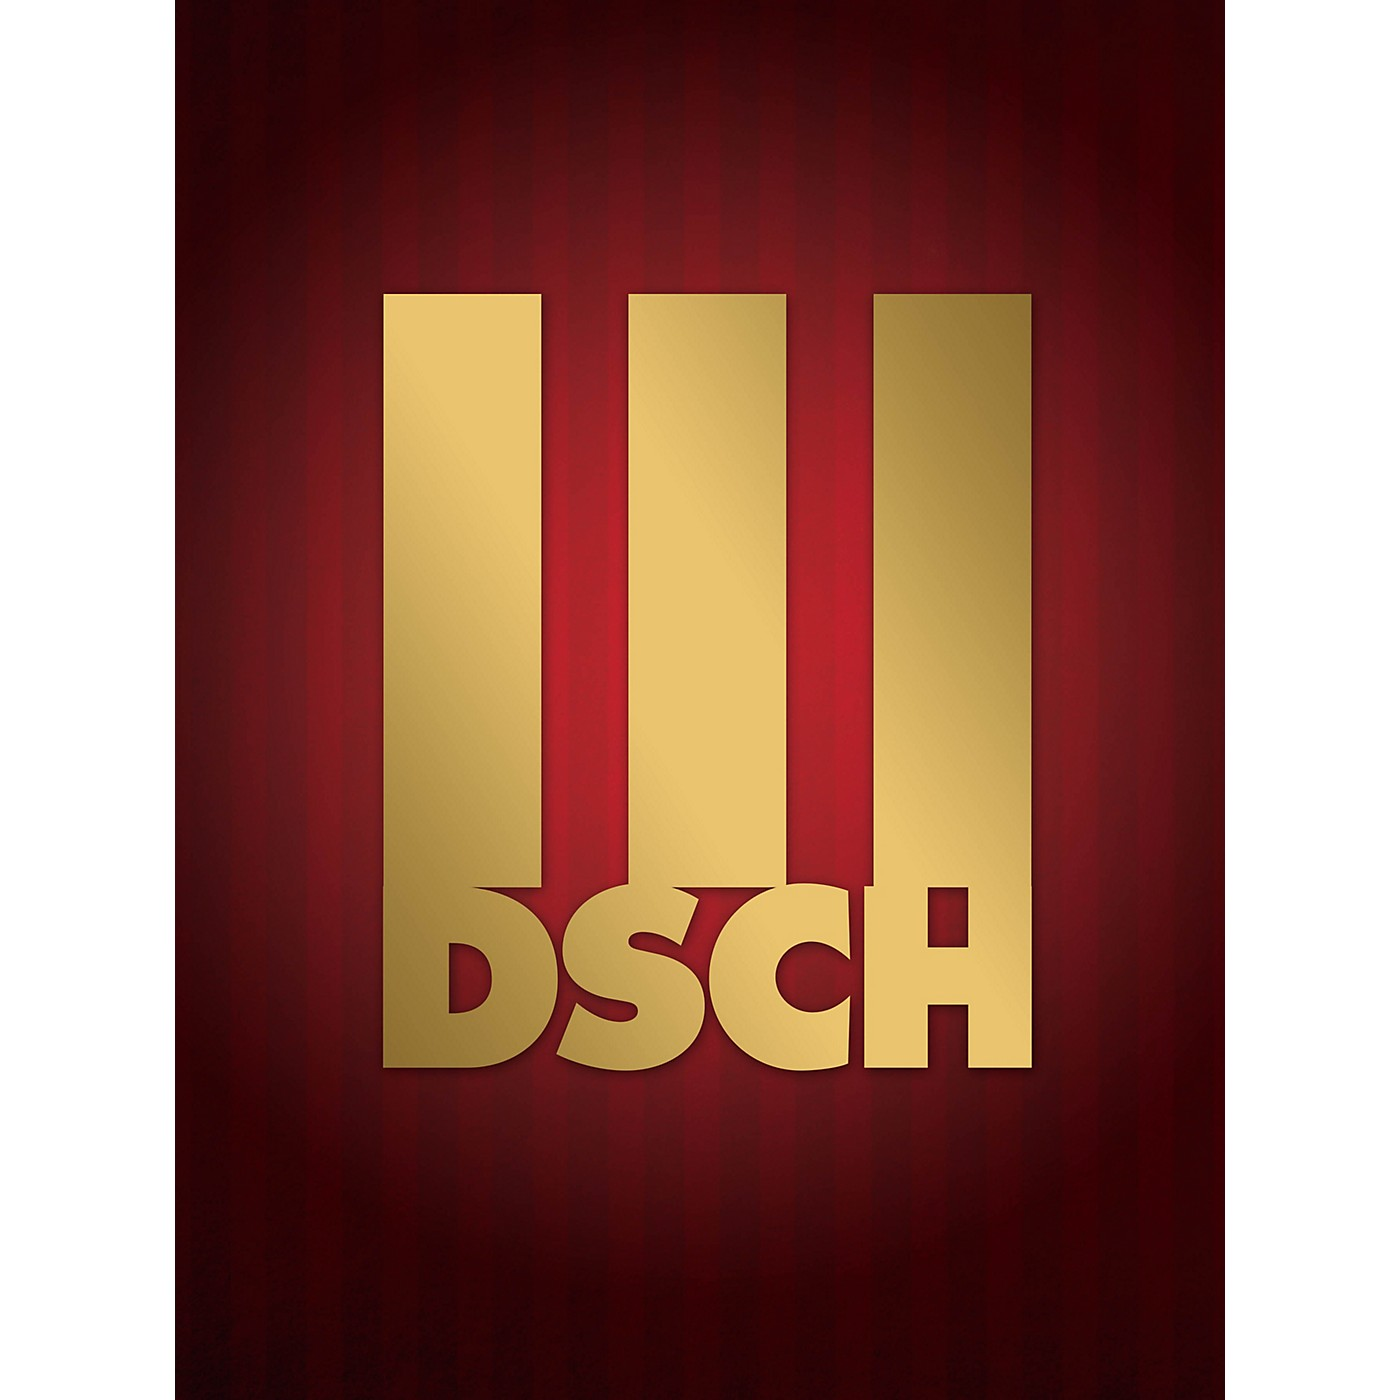 DSCH Symphony No. 9, Op. 70 (New Collected Works of Dmitri Shostakovich - Volume 24) DSCH Series Hardcover thumbnail